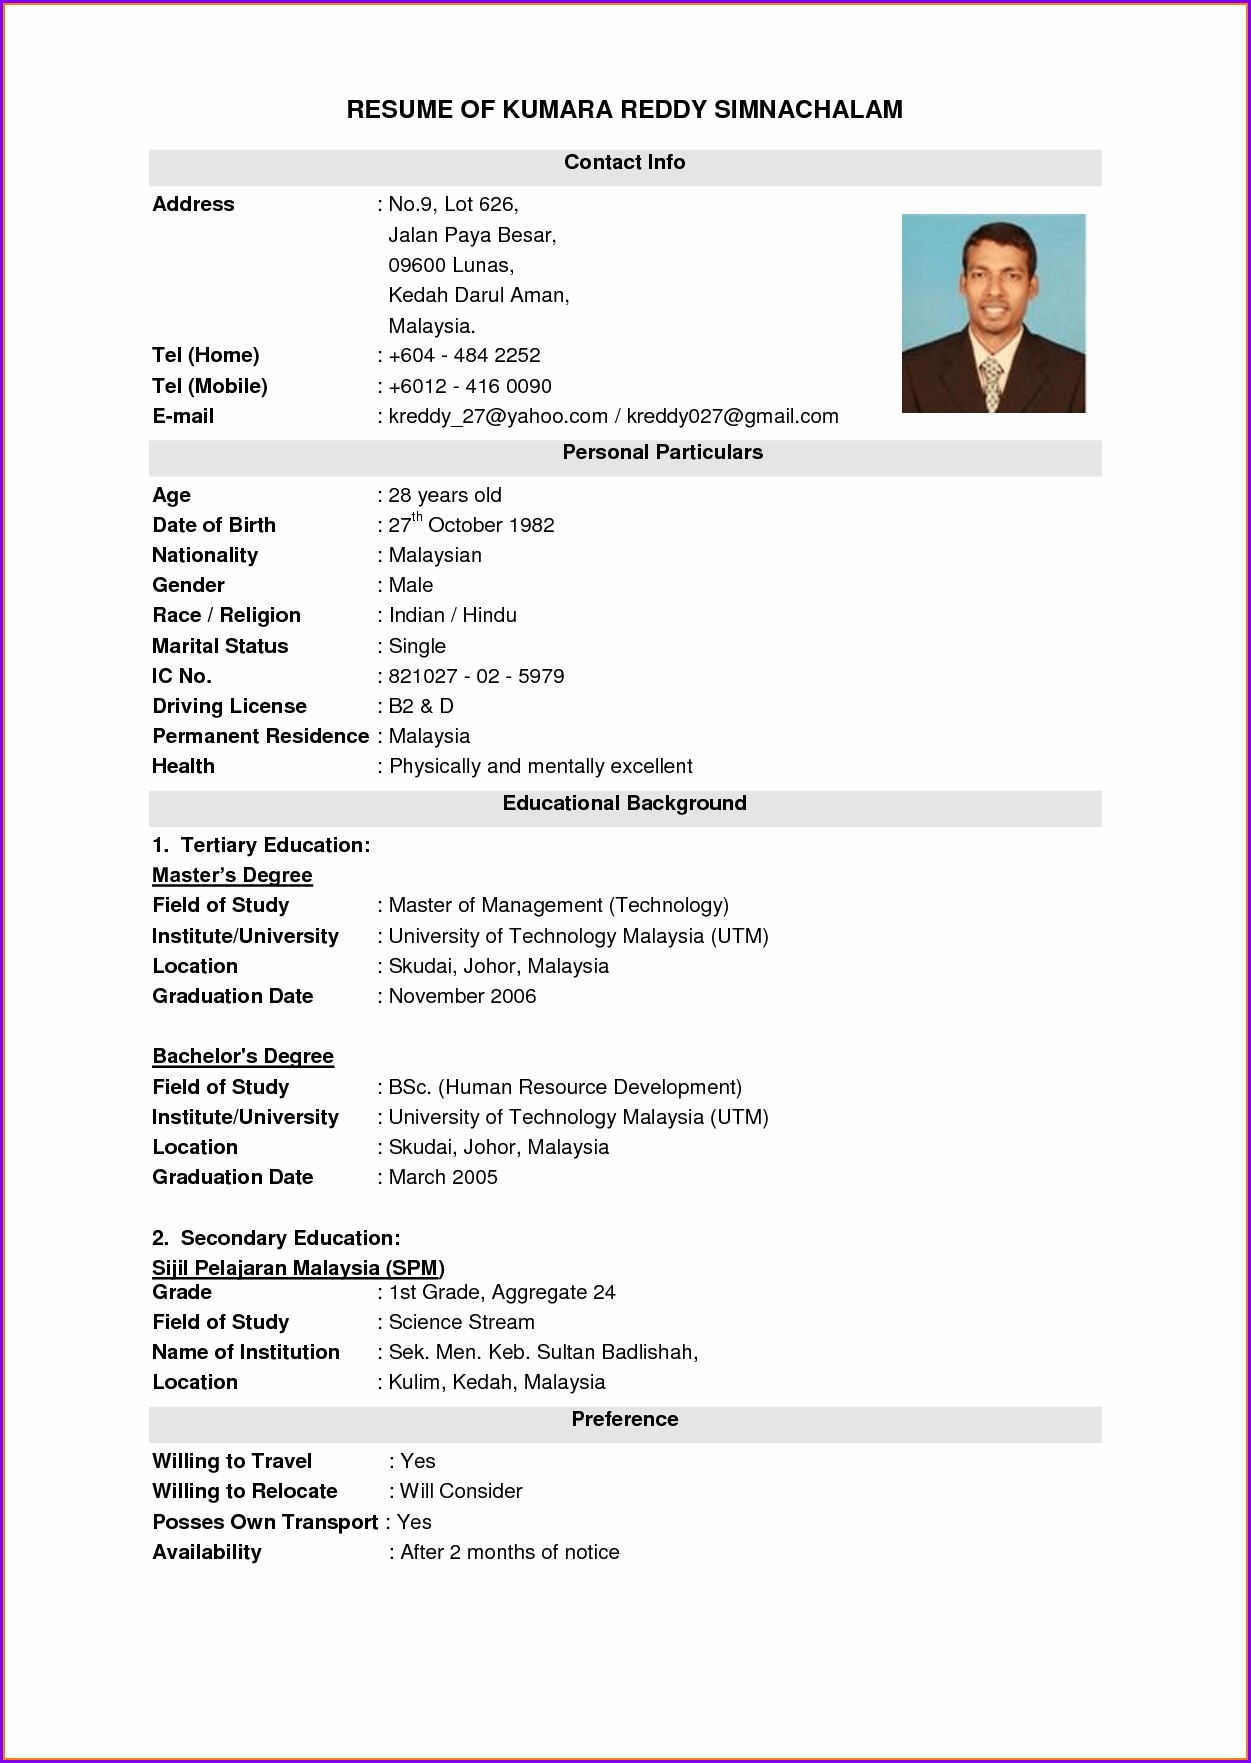 Resume Format For Nurses Download